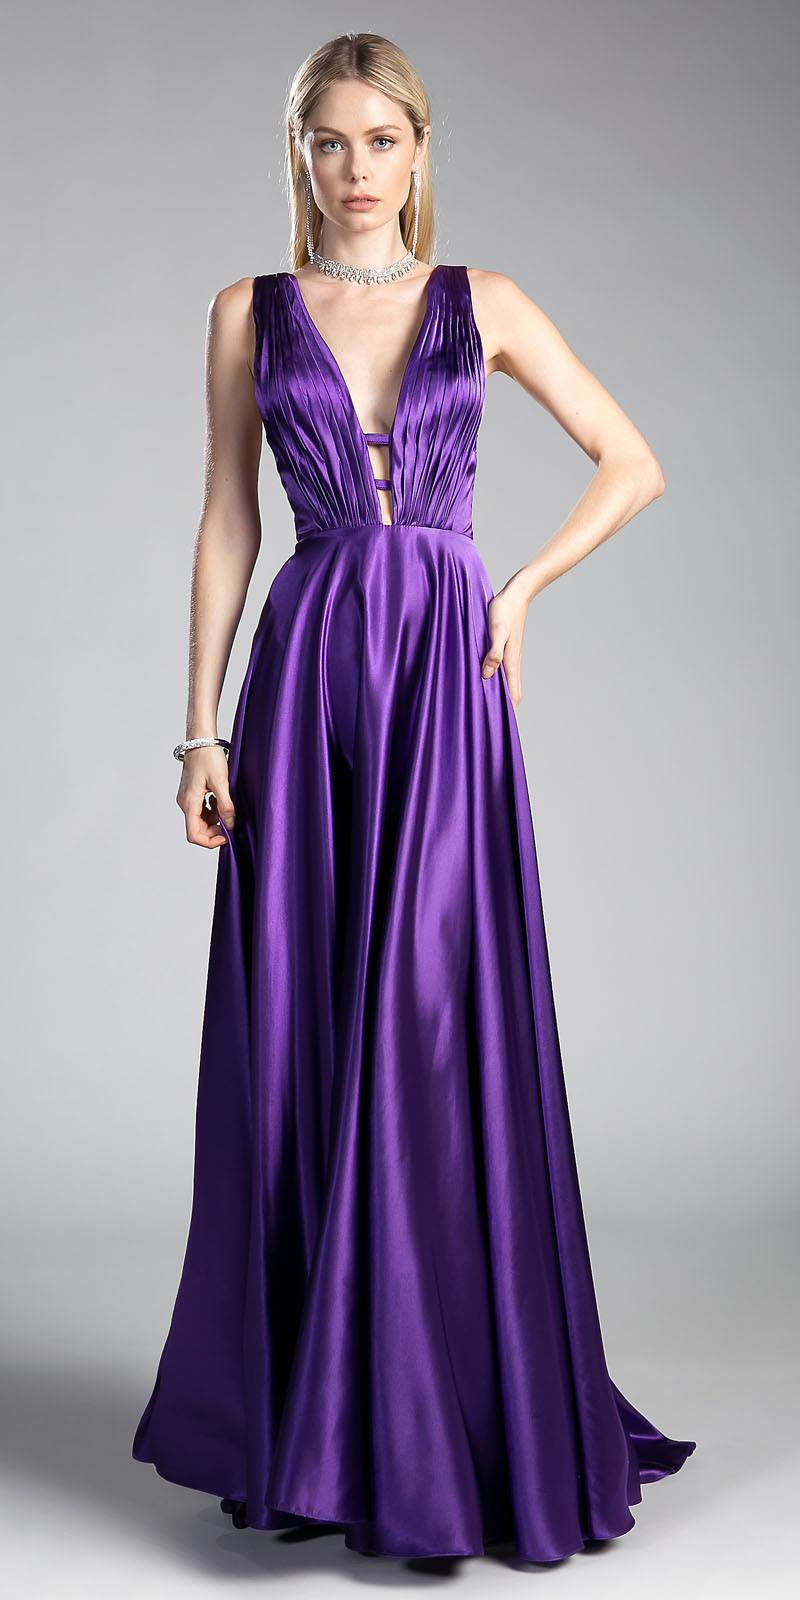 1e9e7b53cc Purple Long Formal Dress Plunging V-Neck Pleated Bodice. Tap to expand